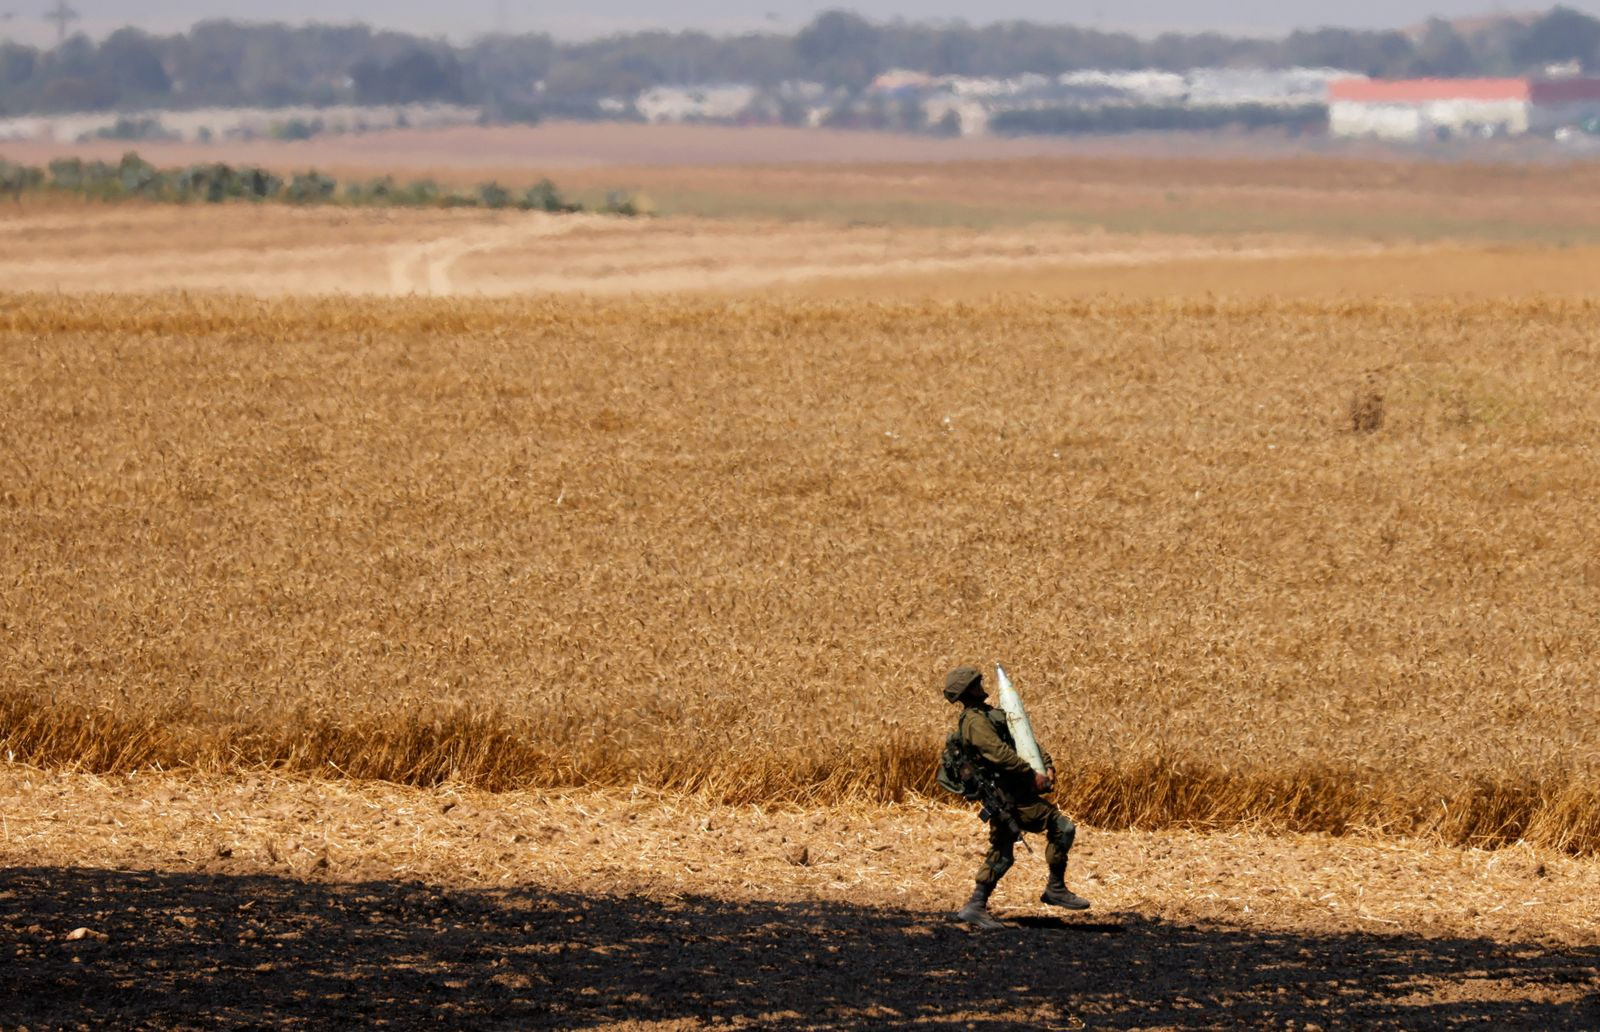 An Israeli soldier carries an artillery shell in a field near the border between Israel and the Gaza Strip, on its Israeli side